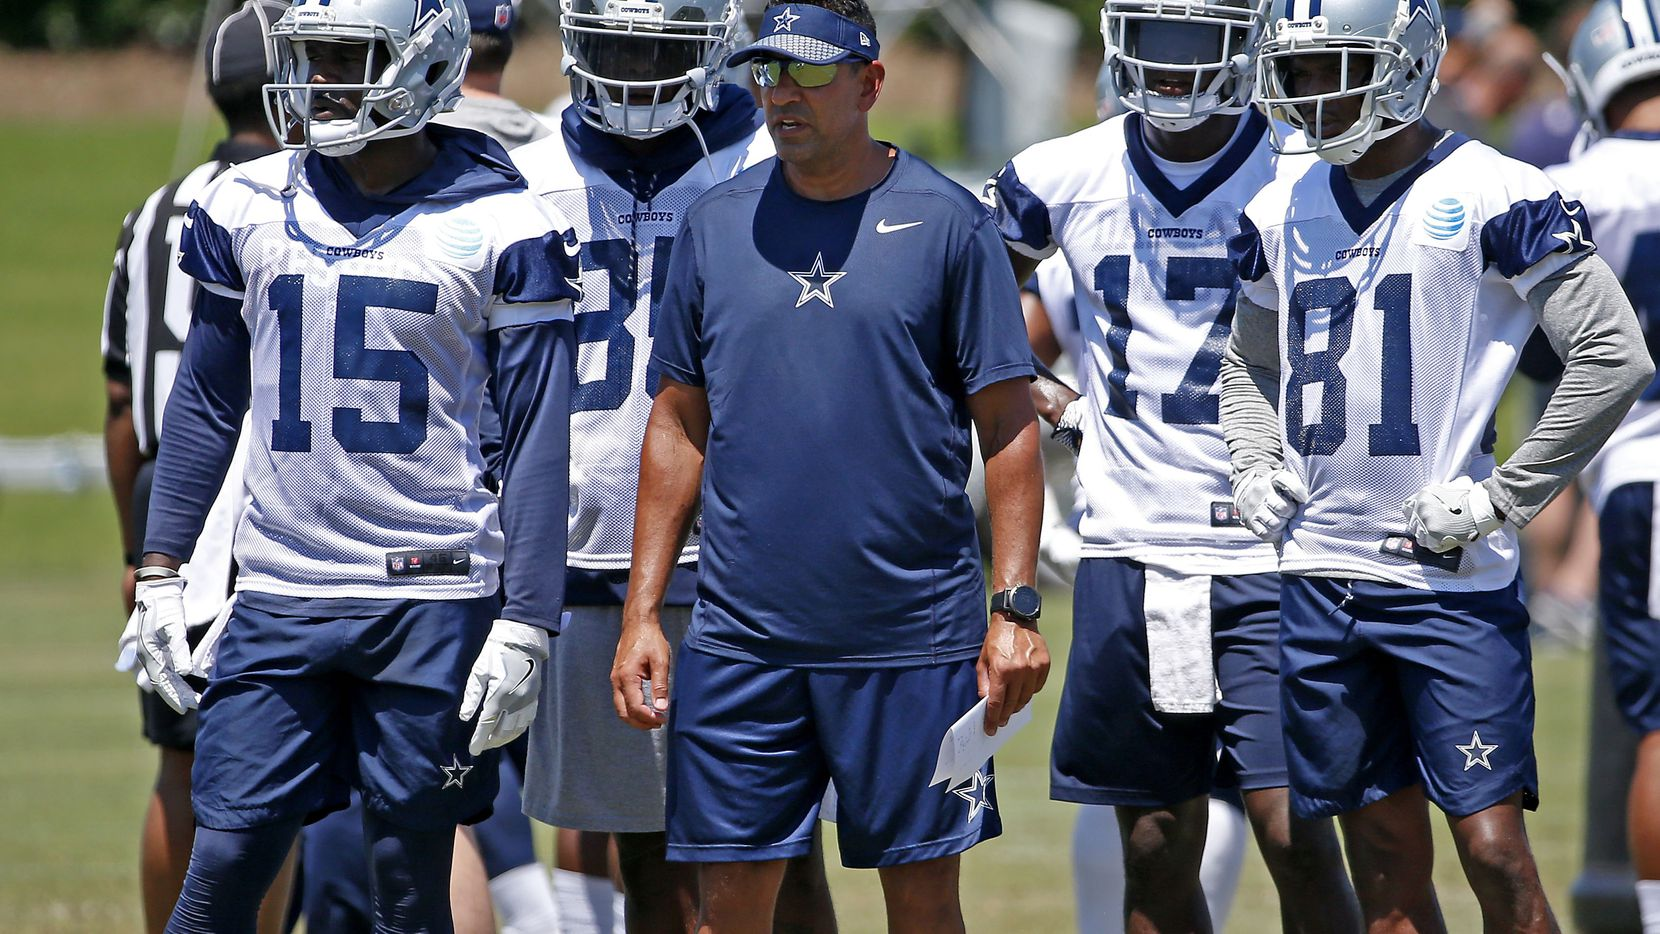 Dallas Cowboys wide receiver coach Sanjay Lal, center, is surrounded by his players Deonte Thompson (15), K.D. Cannon (81), Allen Hurns (17) and Noah Brown (85) during OTA practice at the Star in Frisco, Texas, Wednesday, May 30, 2018. (Jae S. Lee/The Dallas Morning News)